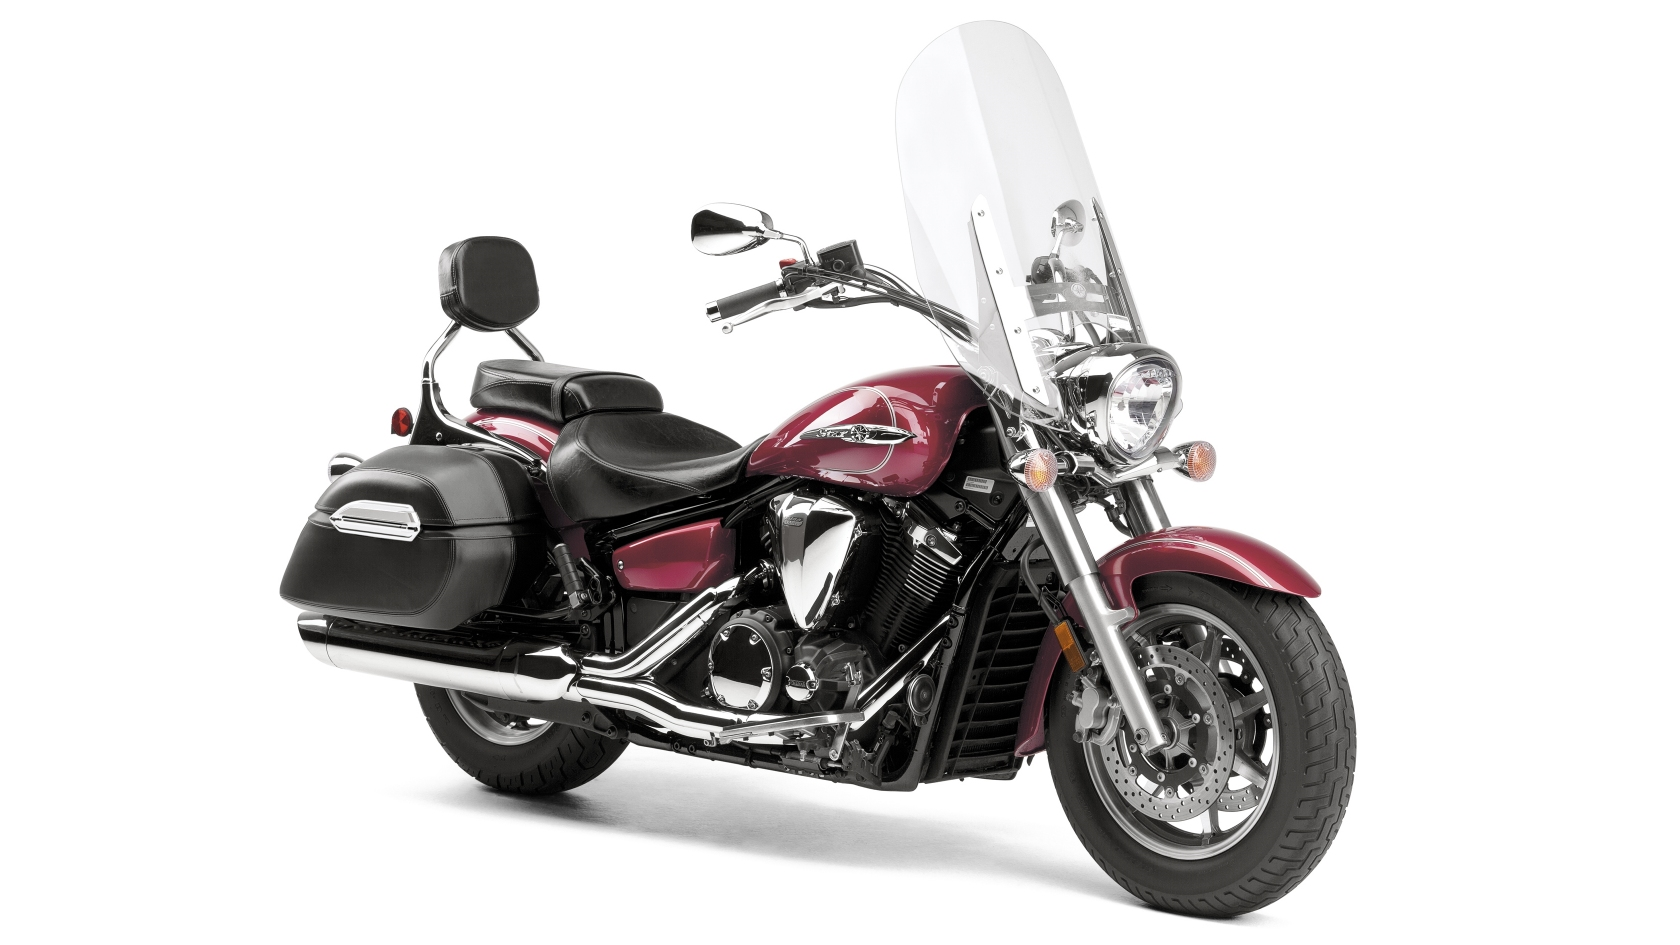 2015 - 2017 Yamaha V Star 1300 Tourer | Top Speed. »